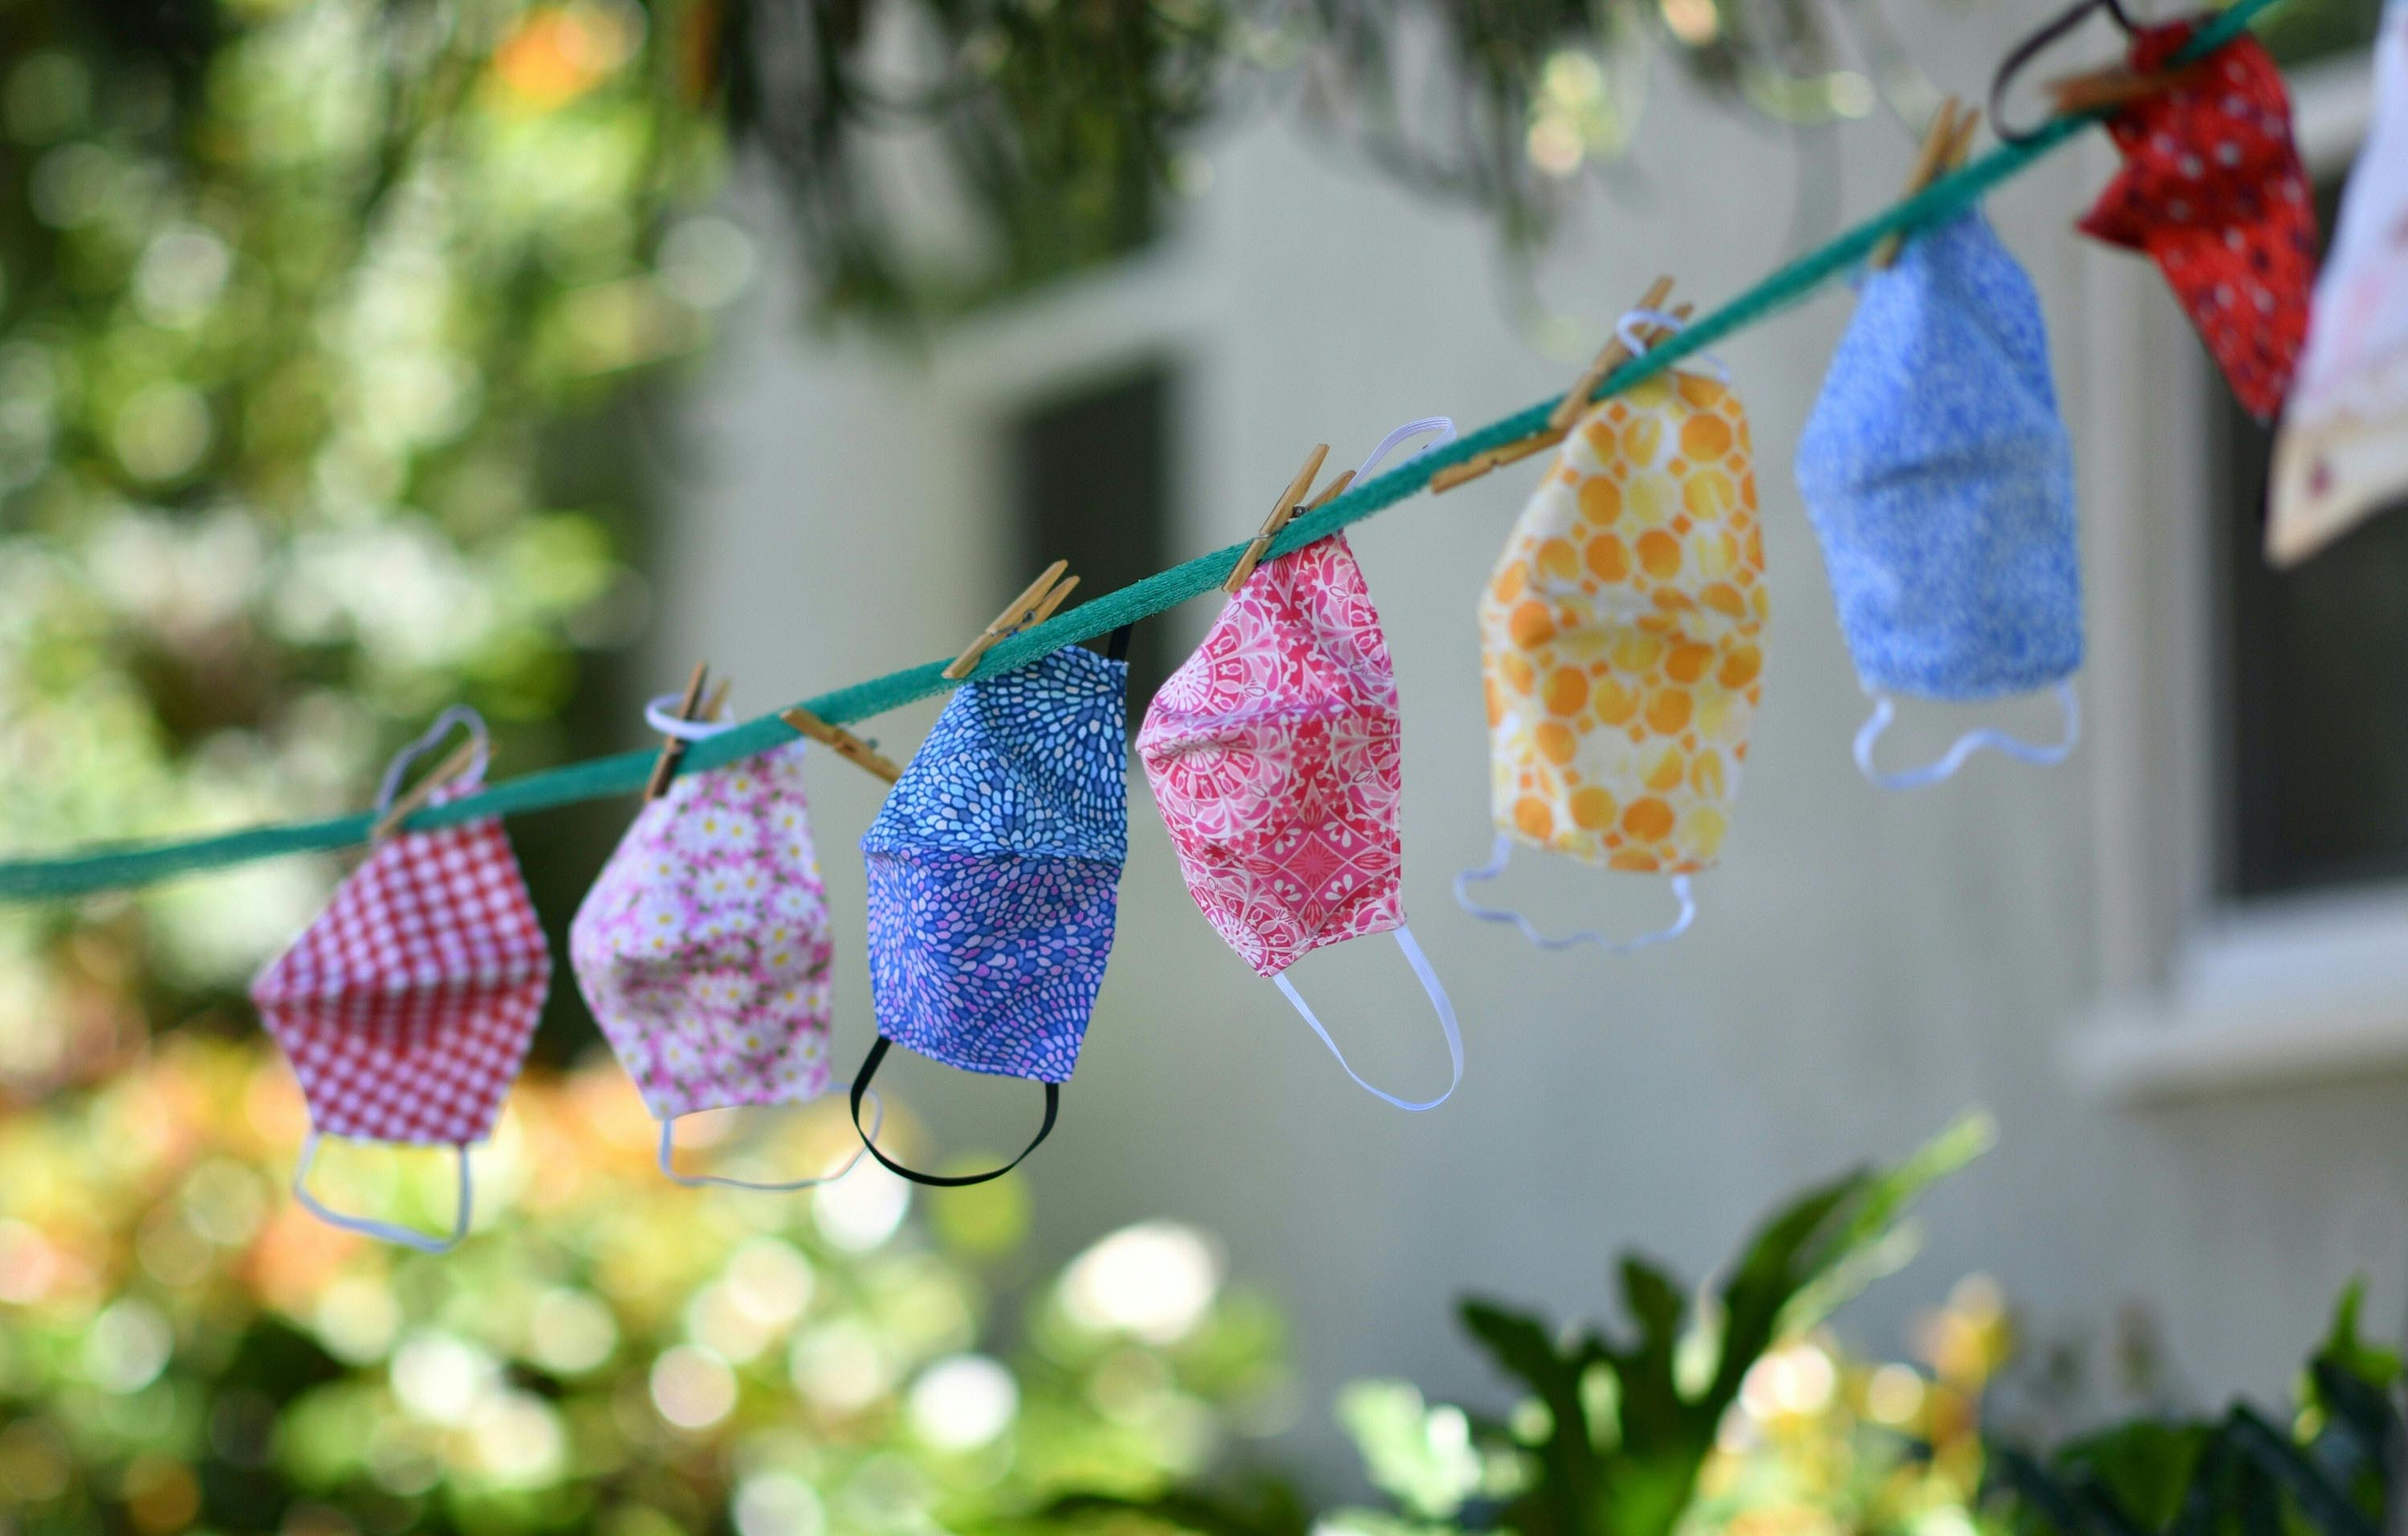 Makes for sale are displayed on a clothesline outside a residence in Los Angeles, California, on July 20, 2020.